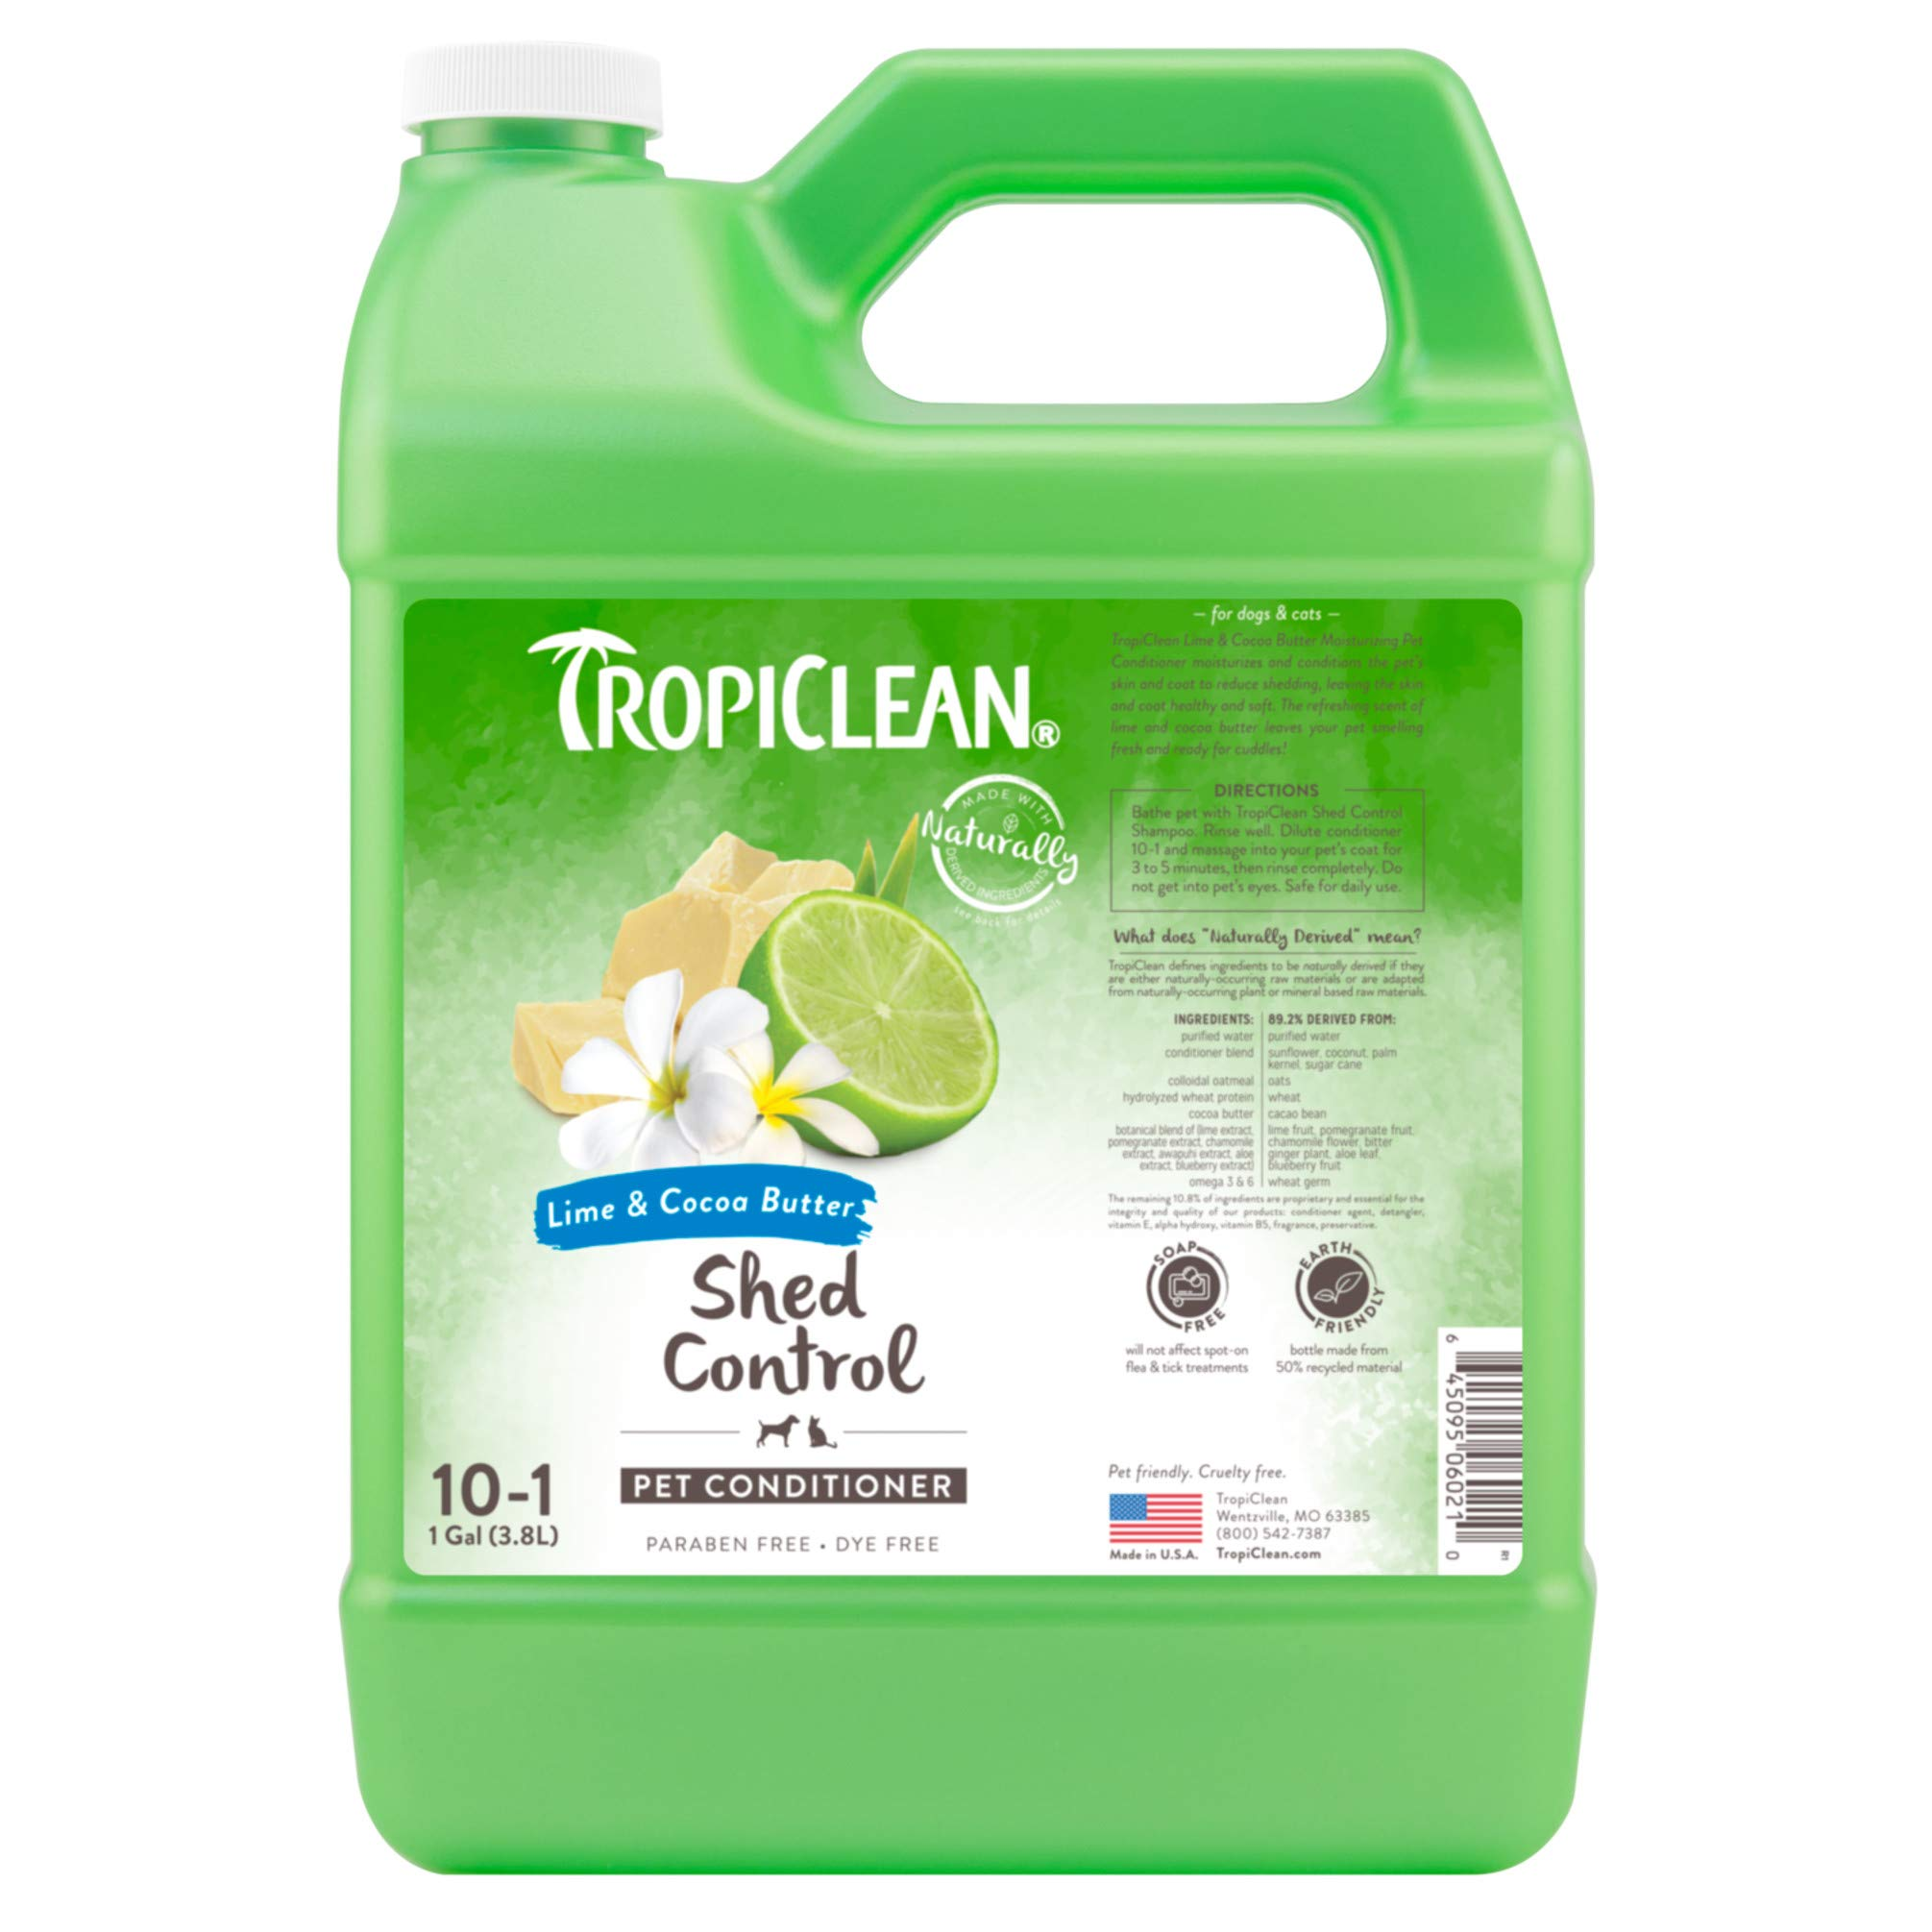 TropiClean Lime & Cocoa Butter Conditioner for Pets, 1 gal, Made in USA by TropiClean